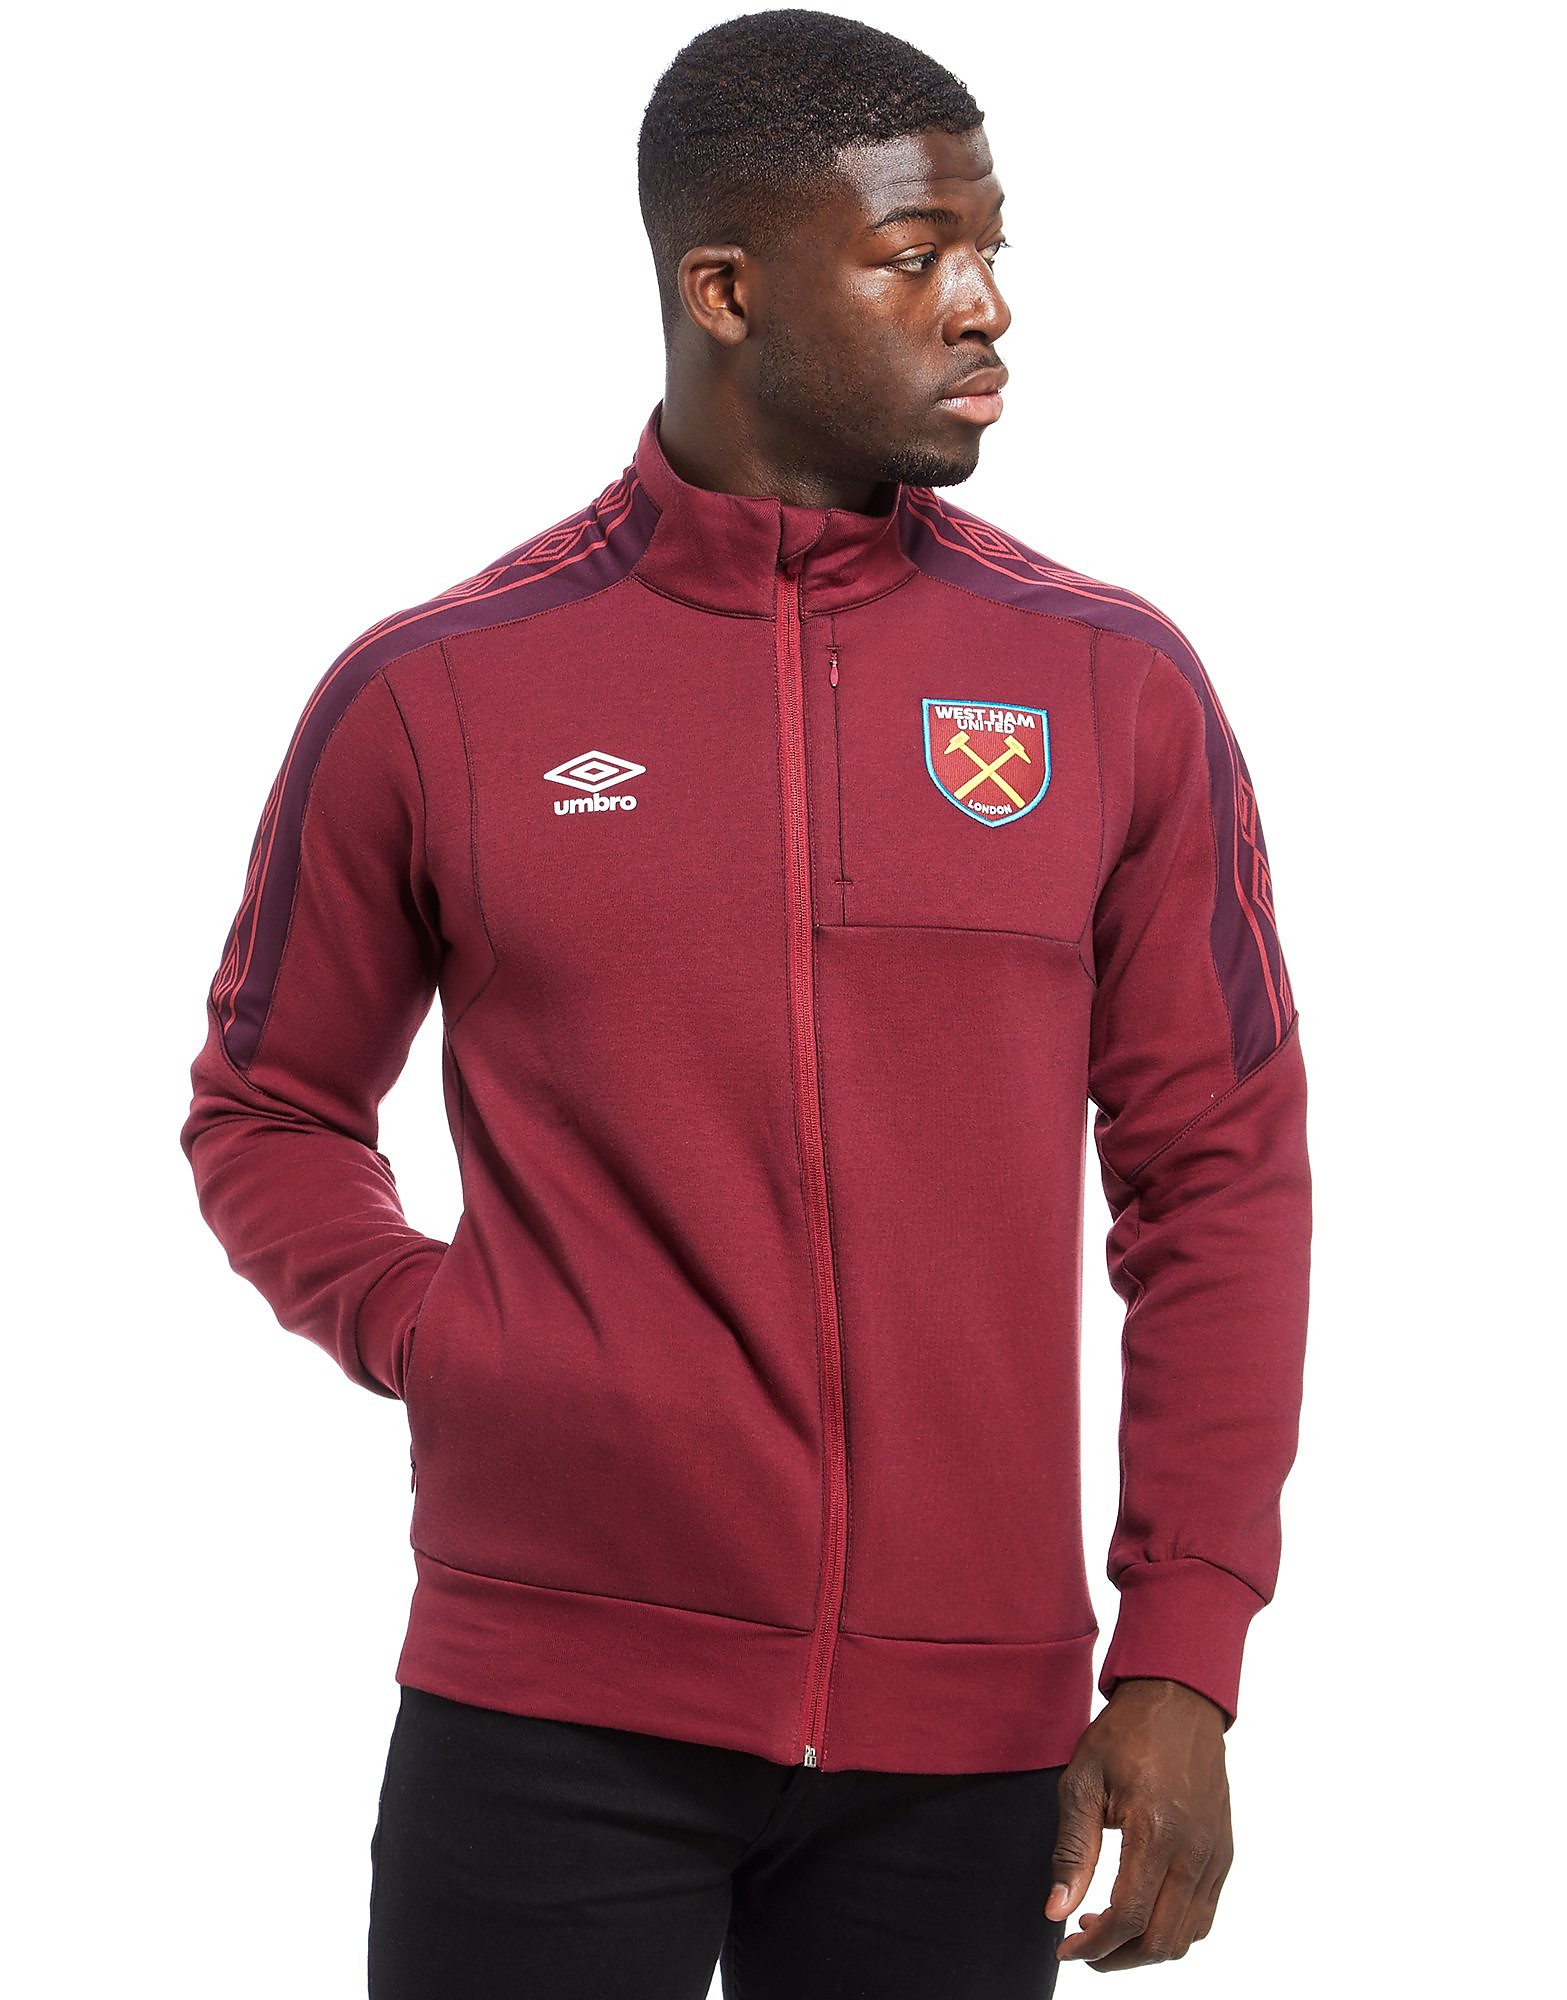 Umbro West Ham United Walkout Jacket